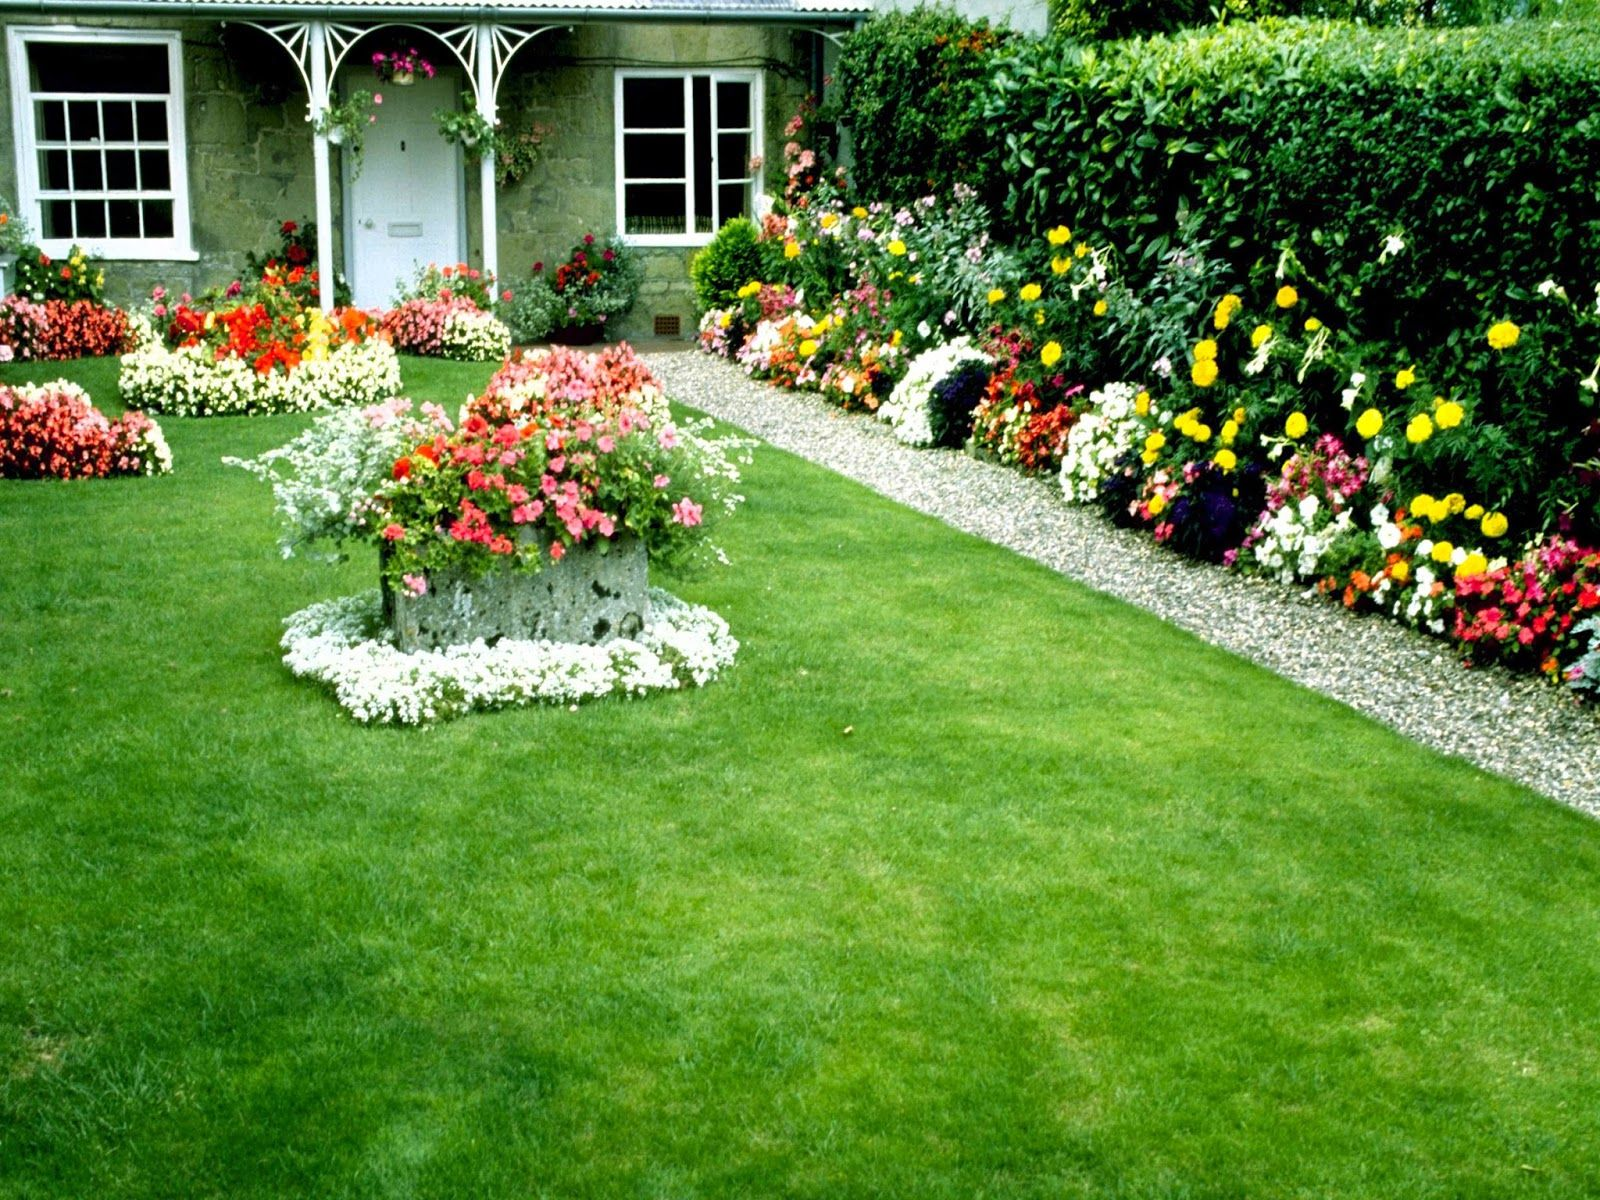 Structural Elements For The Formation And Design Of Gardens Natural Garden Flower Garden Beautiful Gardens